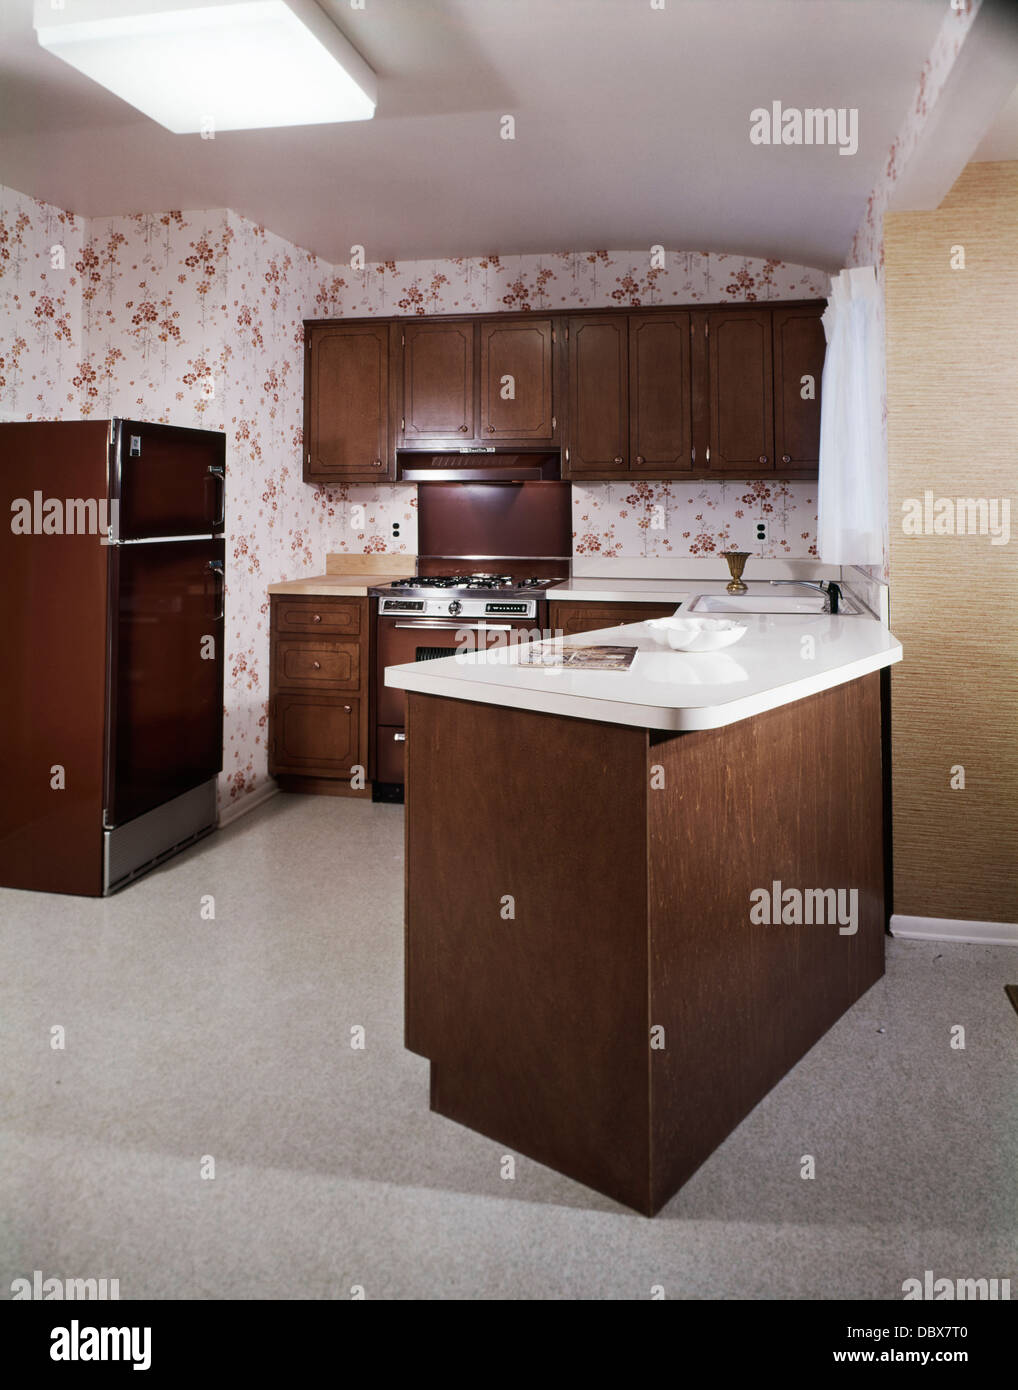 1970 1970s retro kitchen with dining counter island dark wooden cabinets and appliances rust and white wallpaper 1970 1970s retro kitchen with dining counter island dark wooden      rh   alamy com